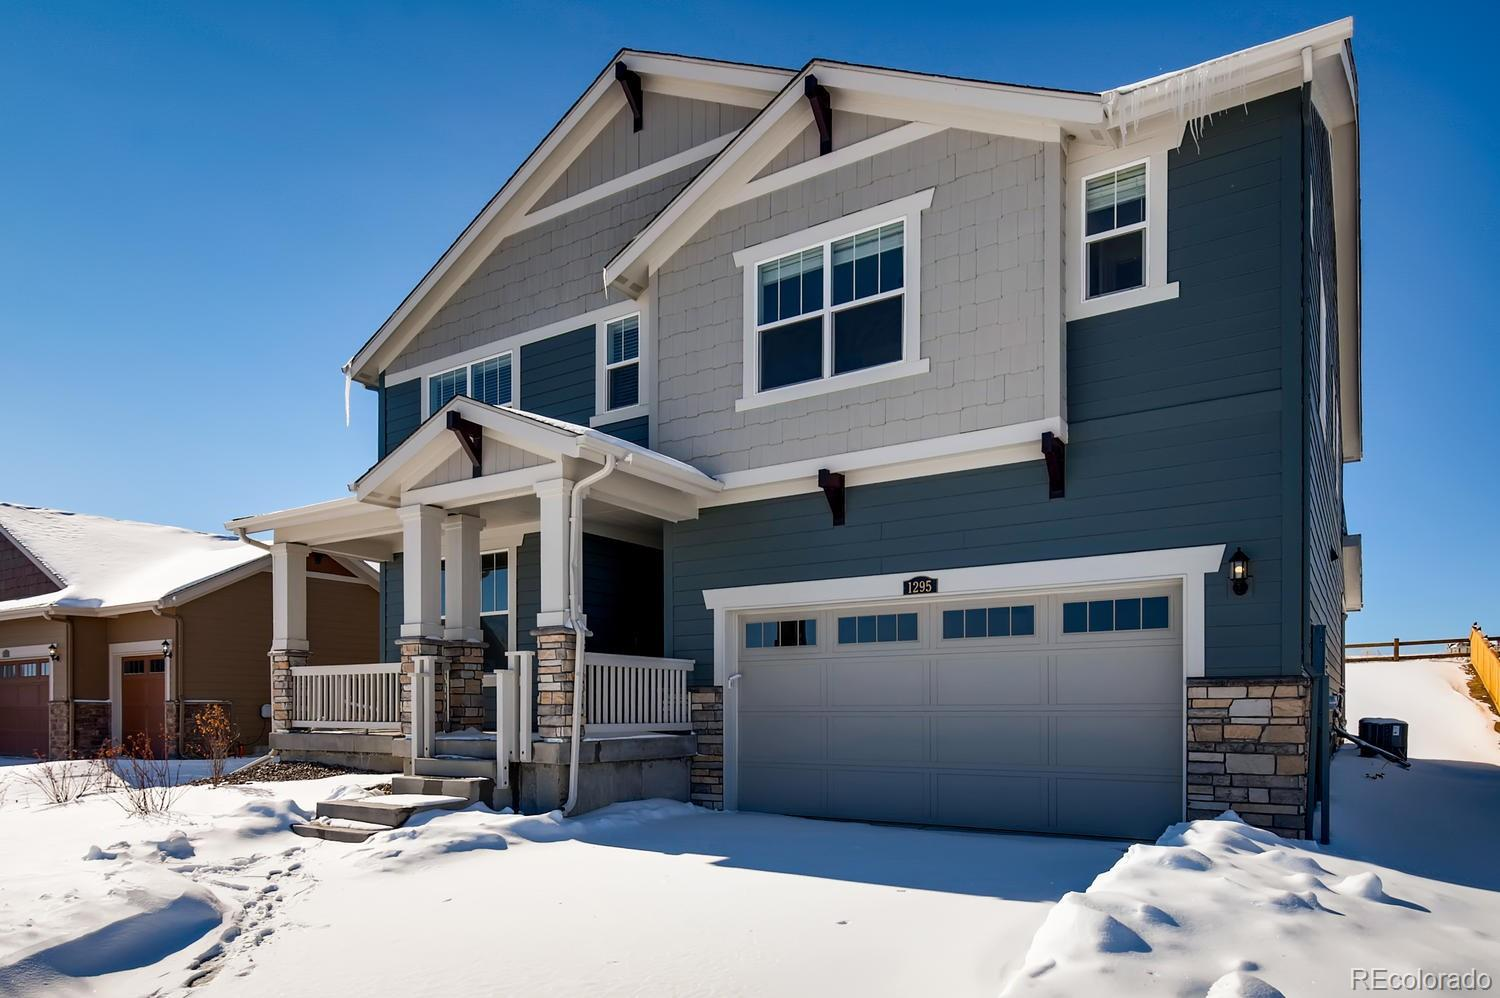 MLS# 4928211 - 1 - 1295 Blackhaw Street, Elizabeth, CO 80107